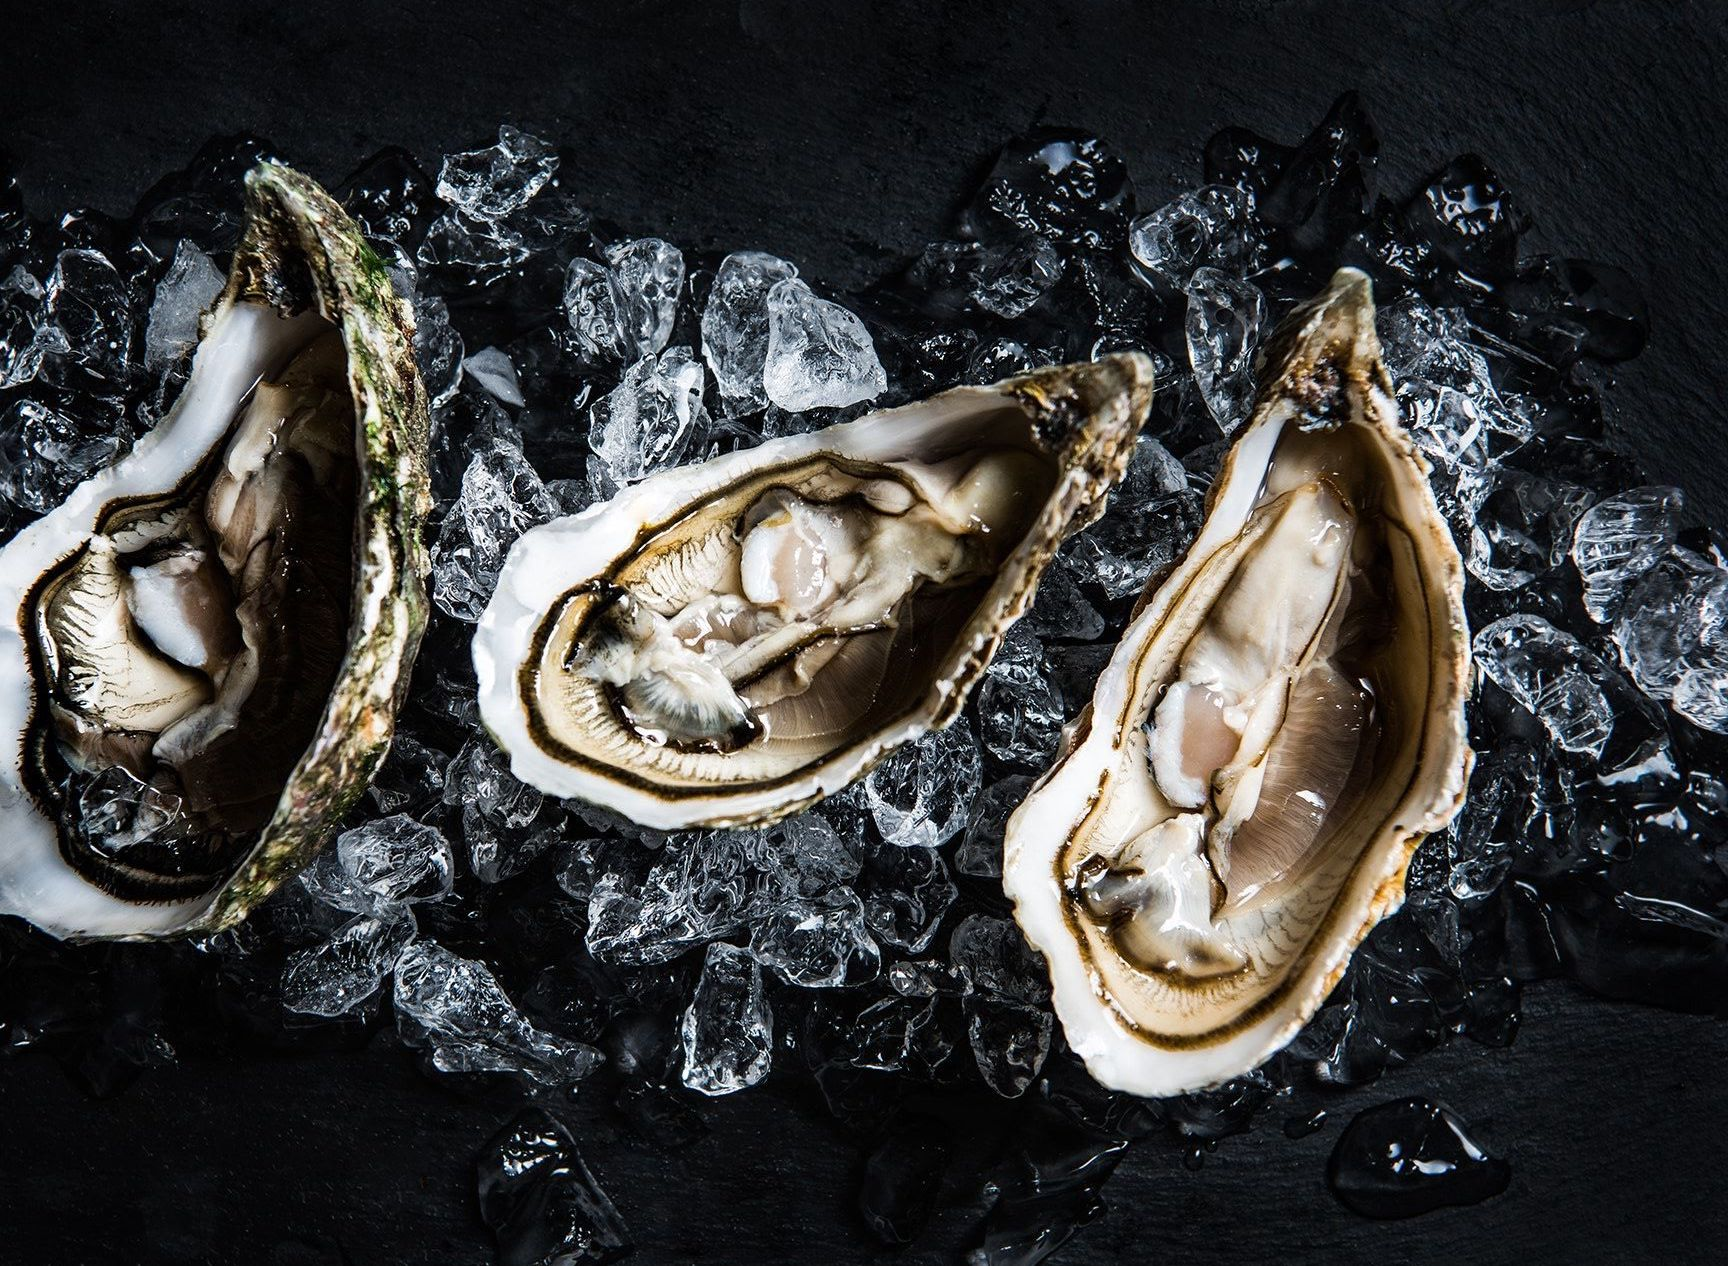 Seafood Queens | 海鲜皇后宝贝 OUR PRODUCTS - 贝壳类 SHELLFISH / CLAMS (COMING SOON)